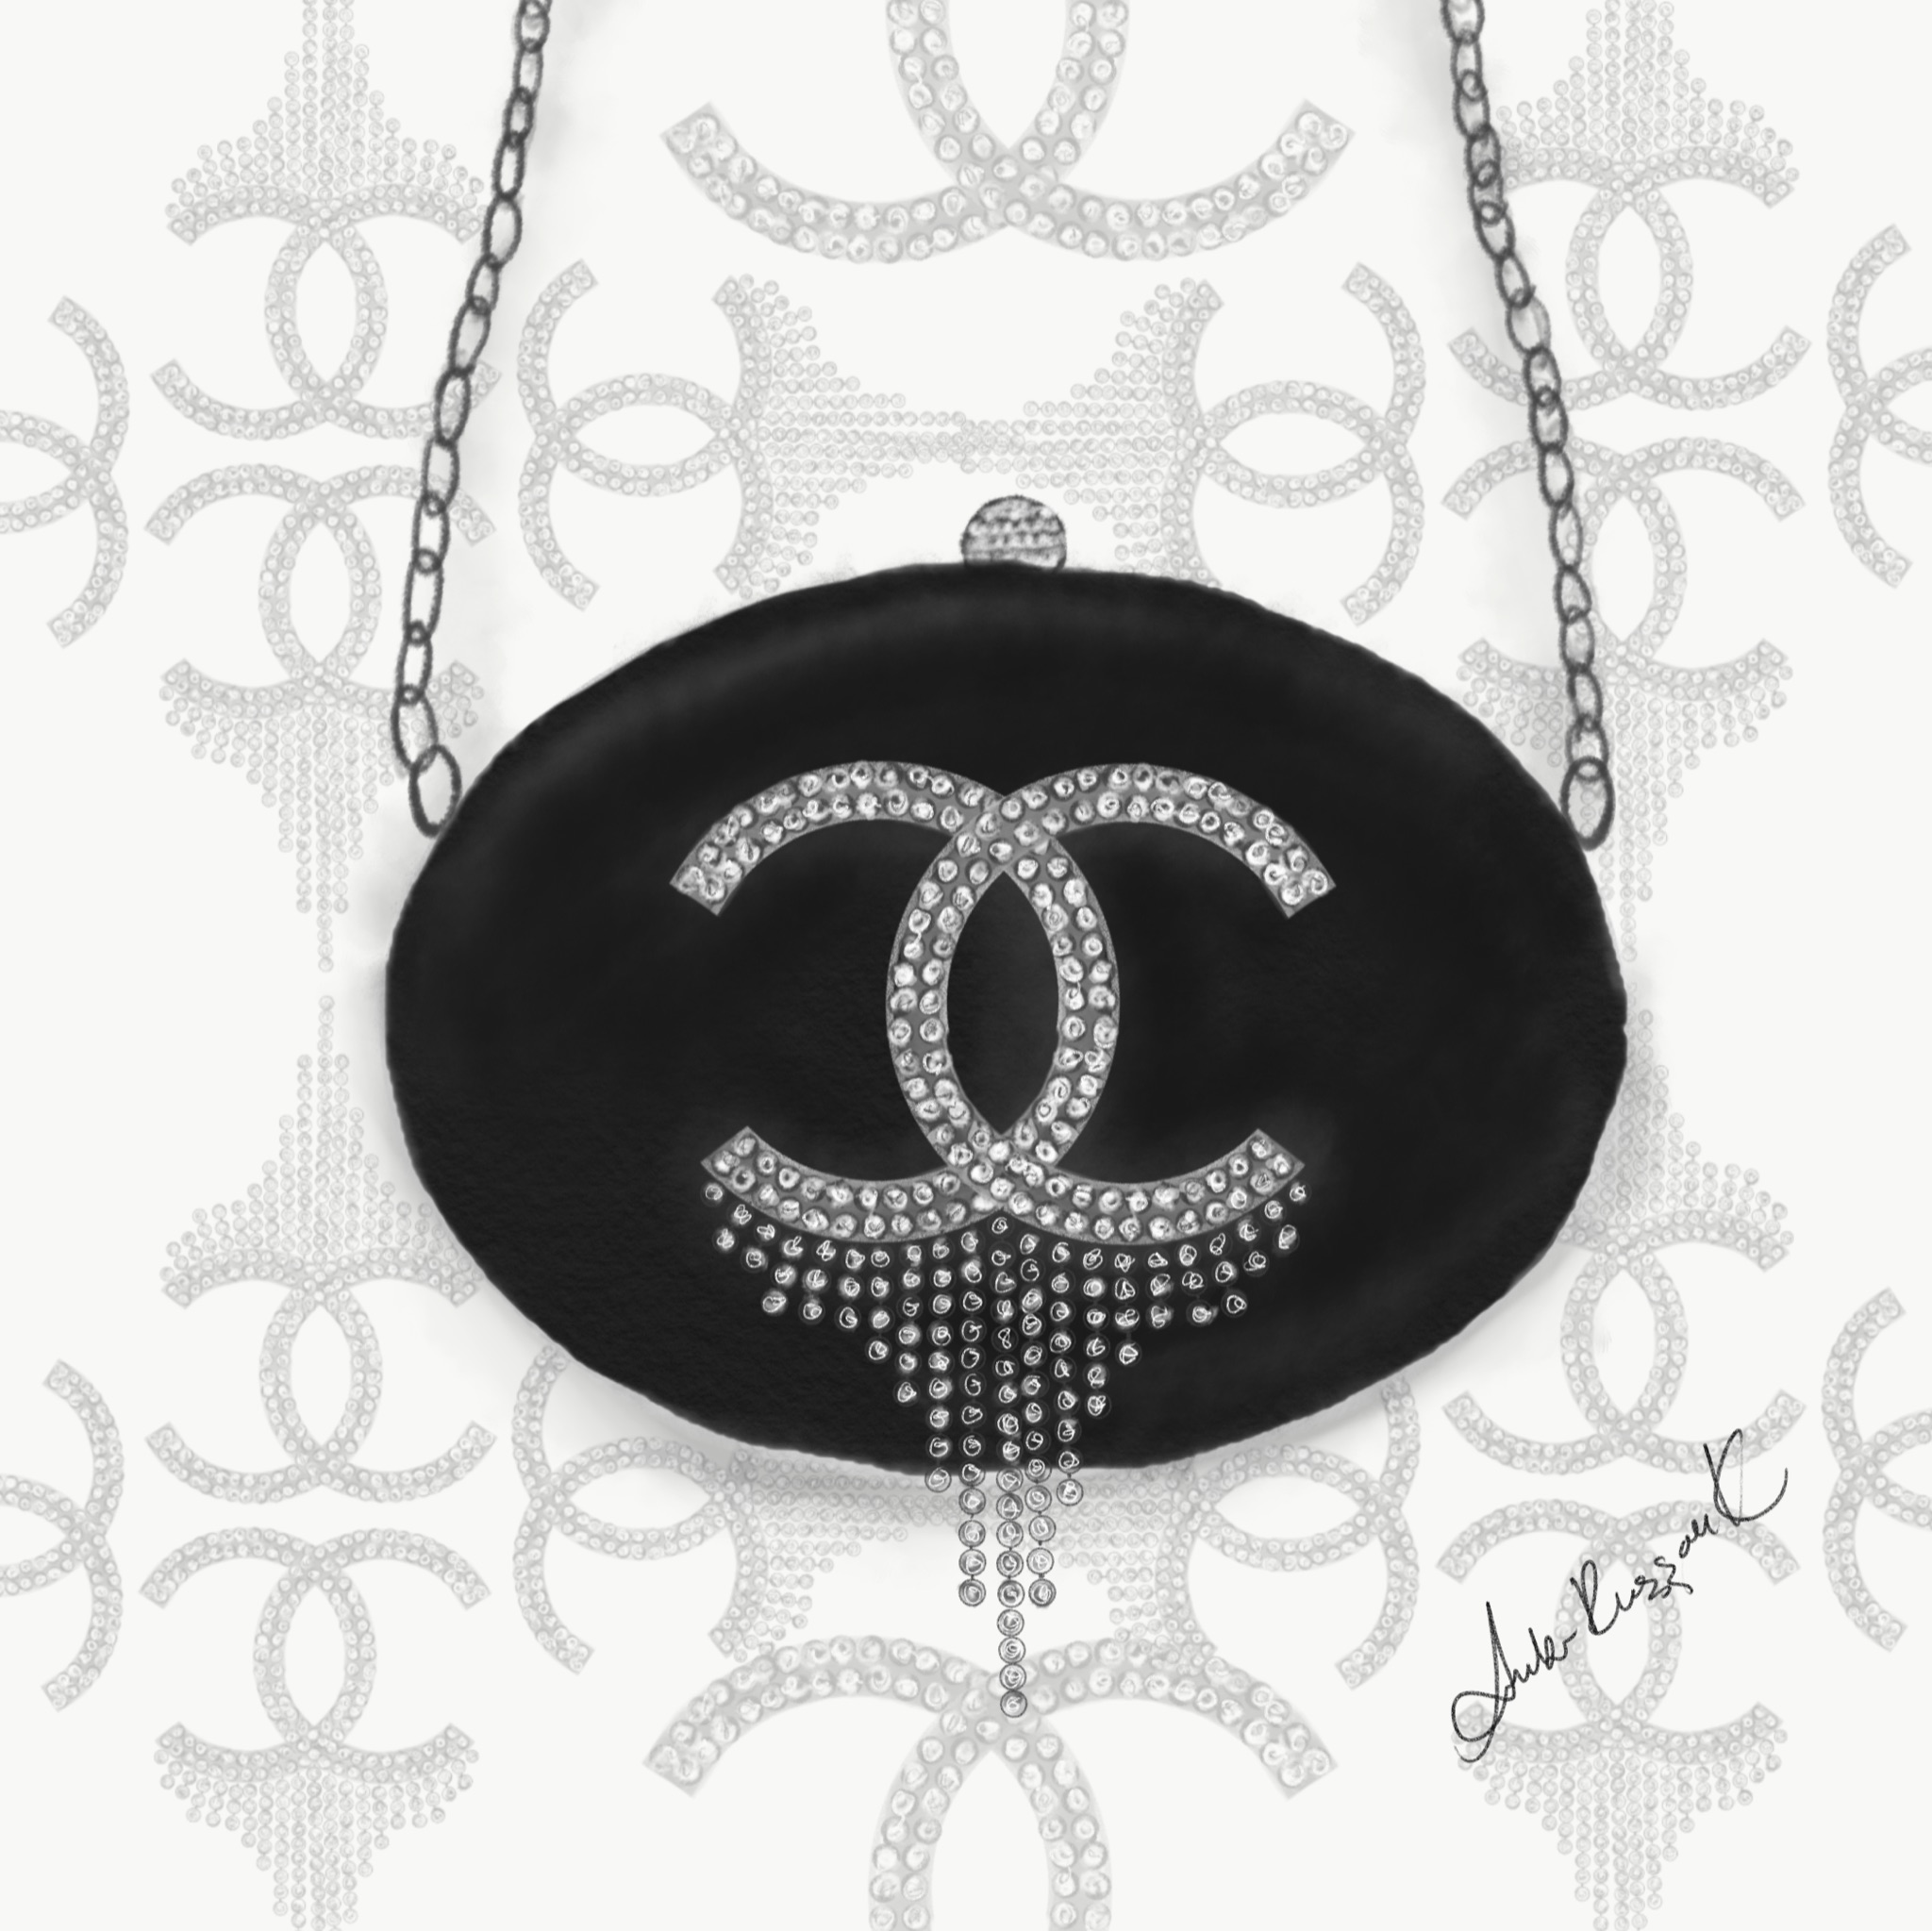 Chanel Bag from 2018 collection